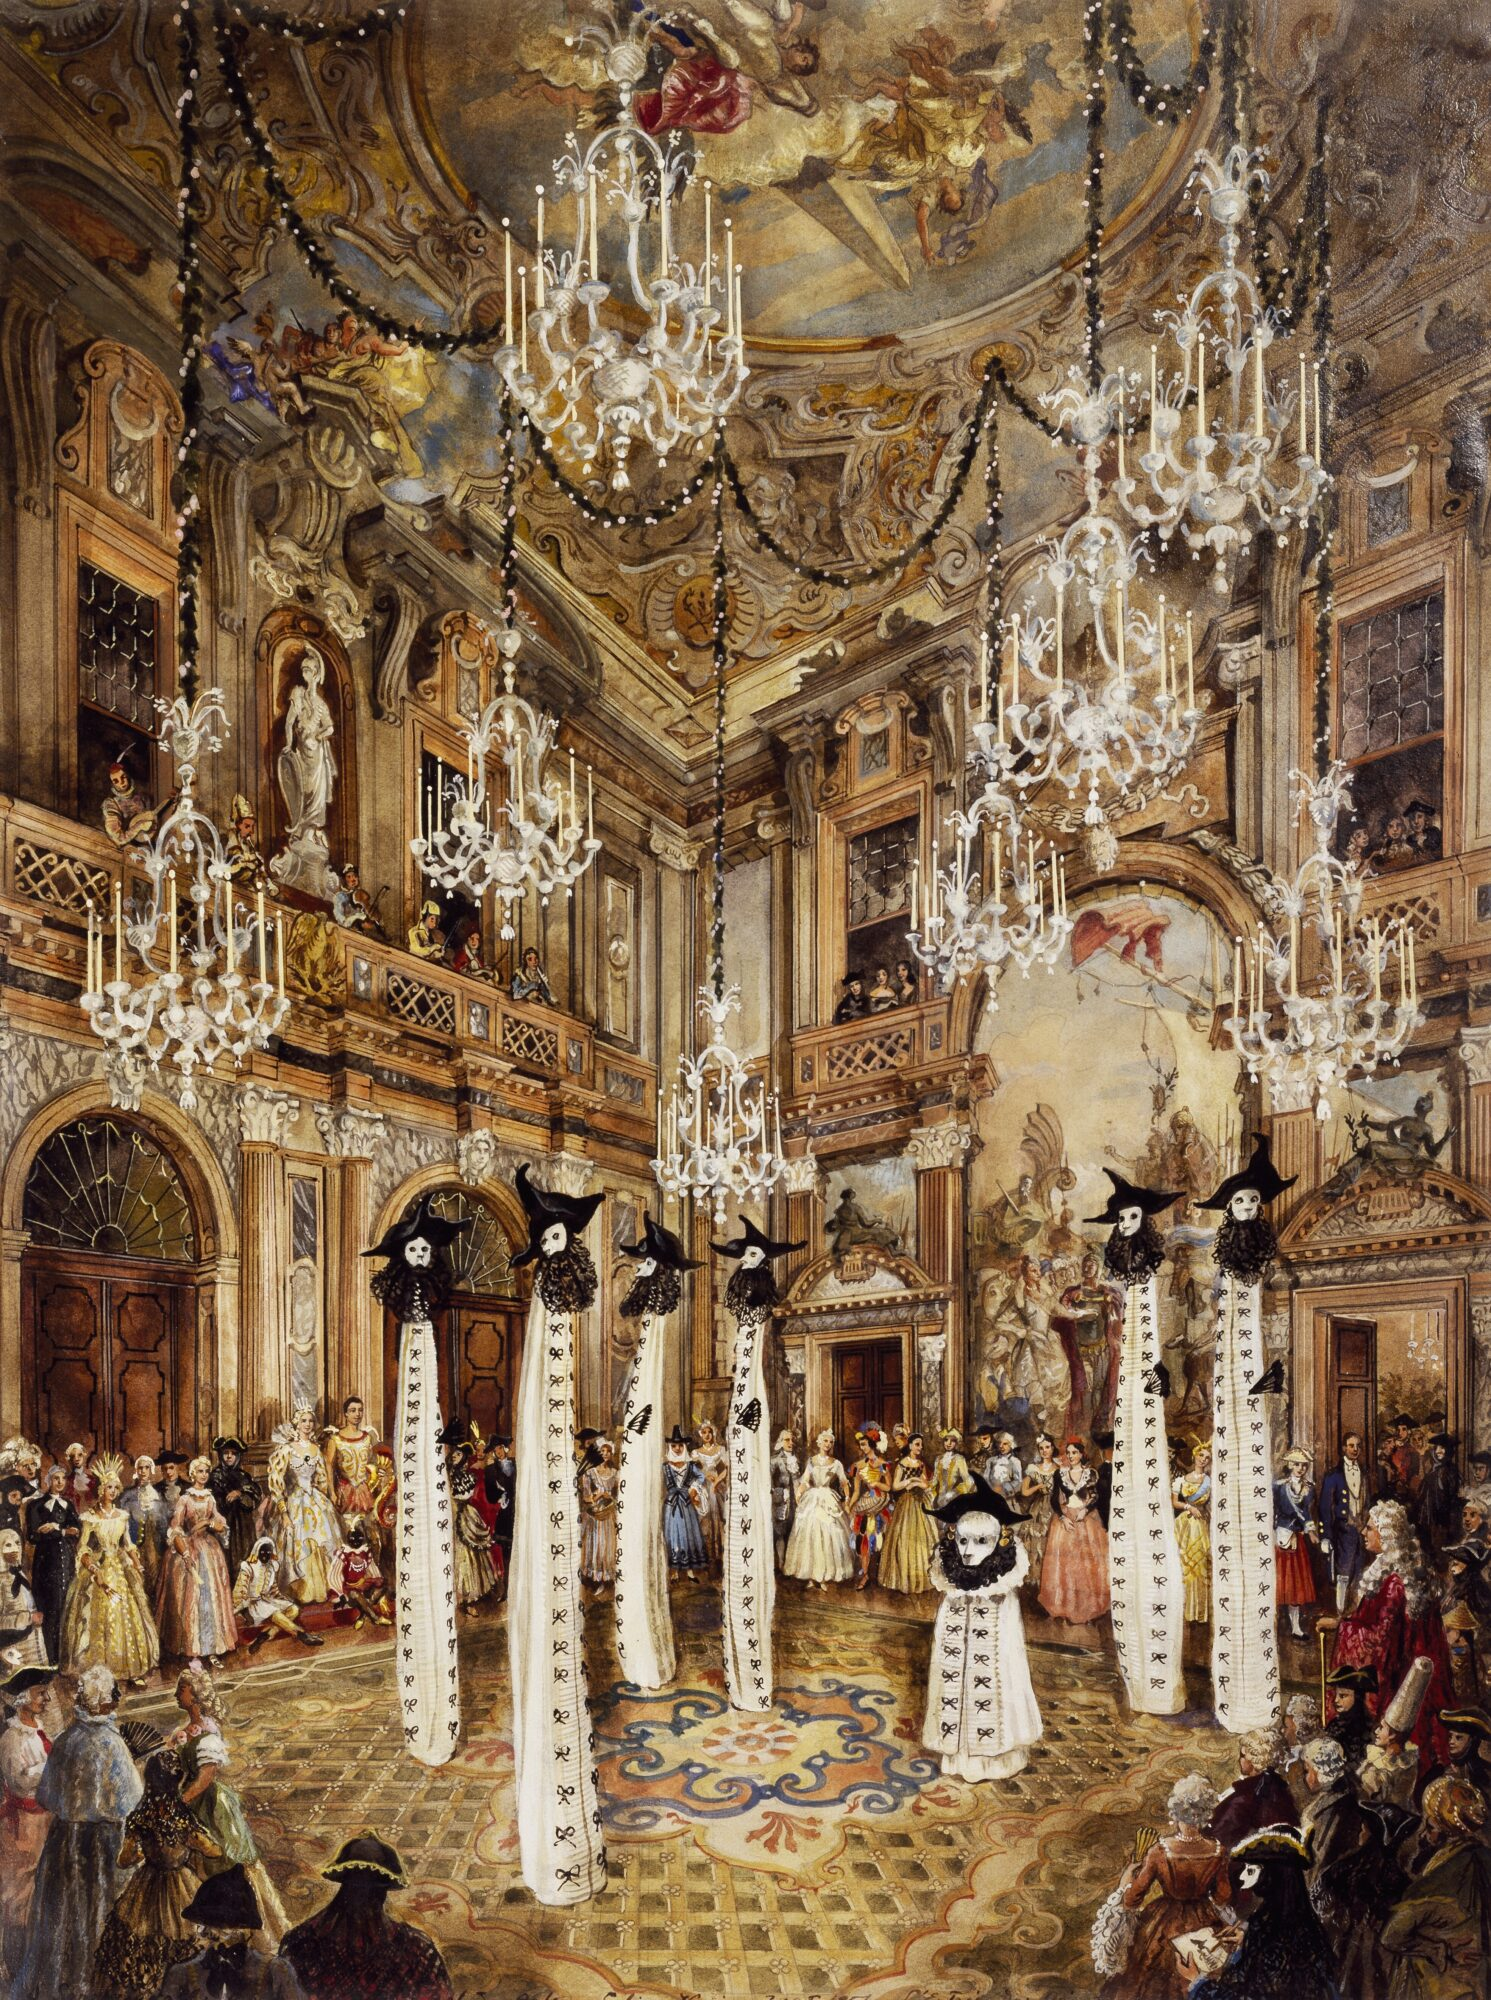 Alexandre Serebriakoff, Entrance of the ghosts of Venice during a fancy dress party, in 1951 by Charles de Beistegui in Palazzo Labia, watercolour / Agefotostock